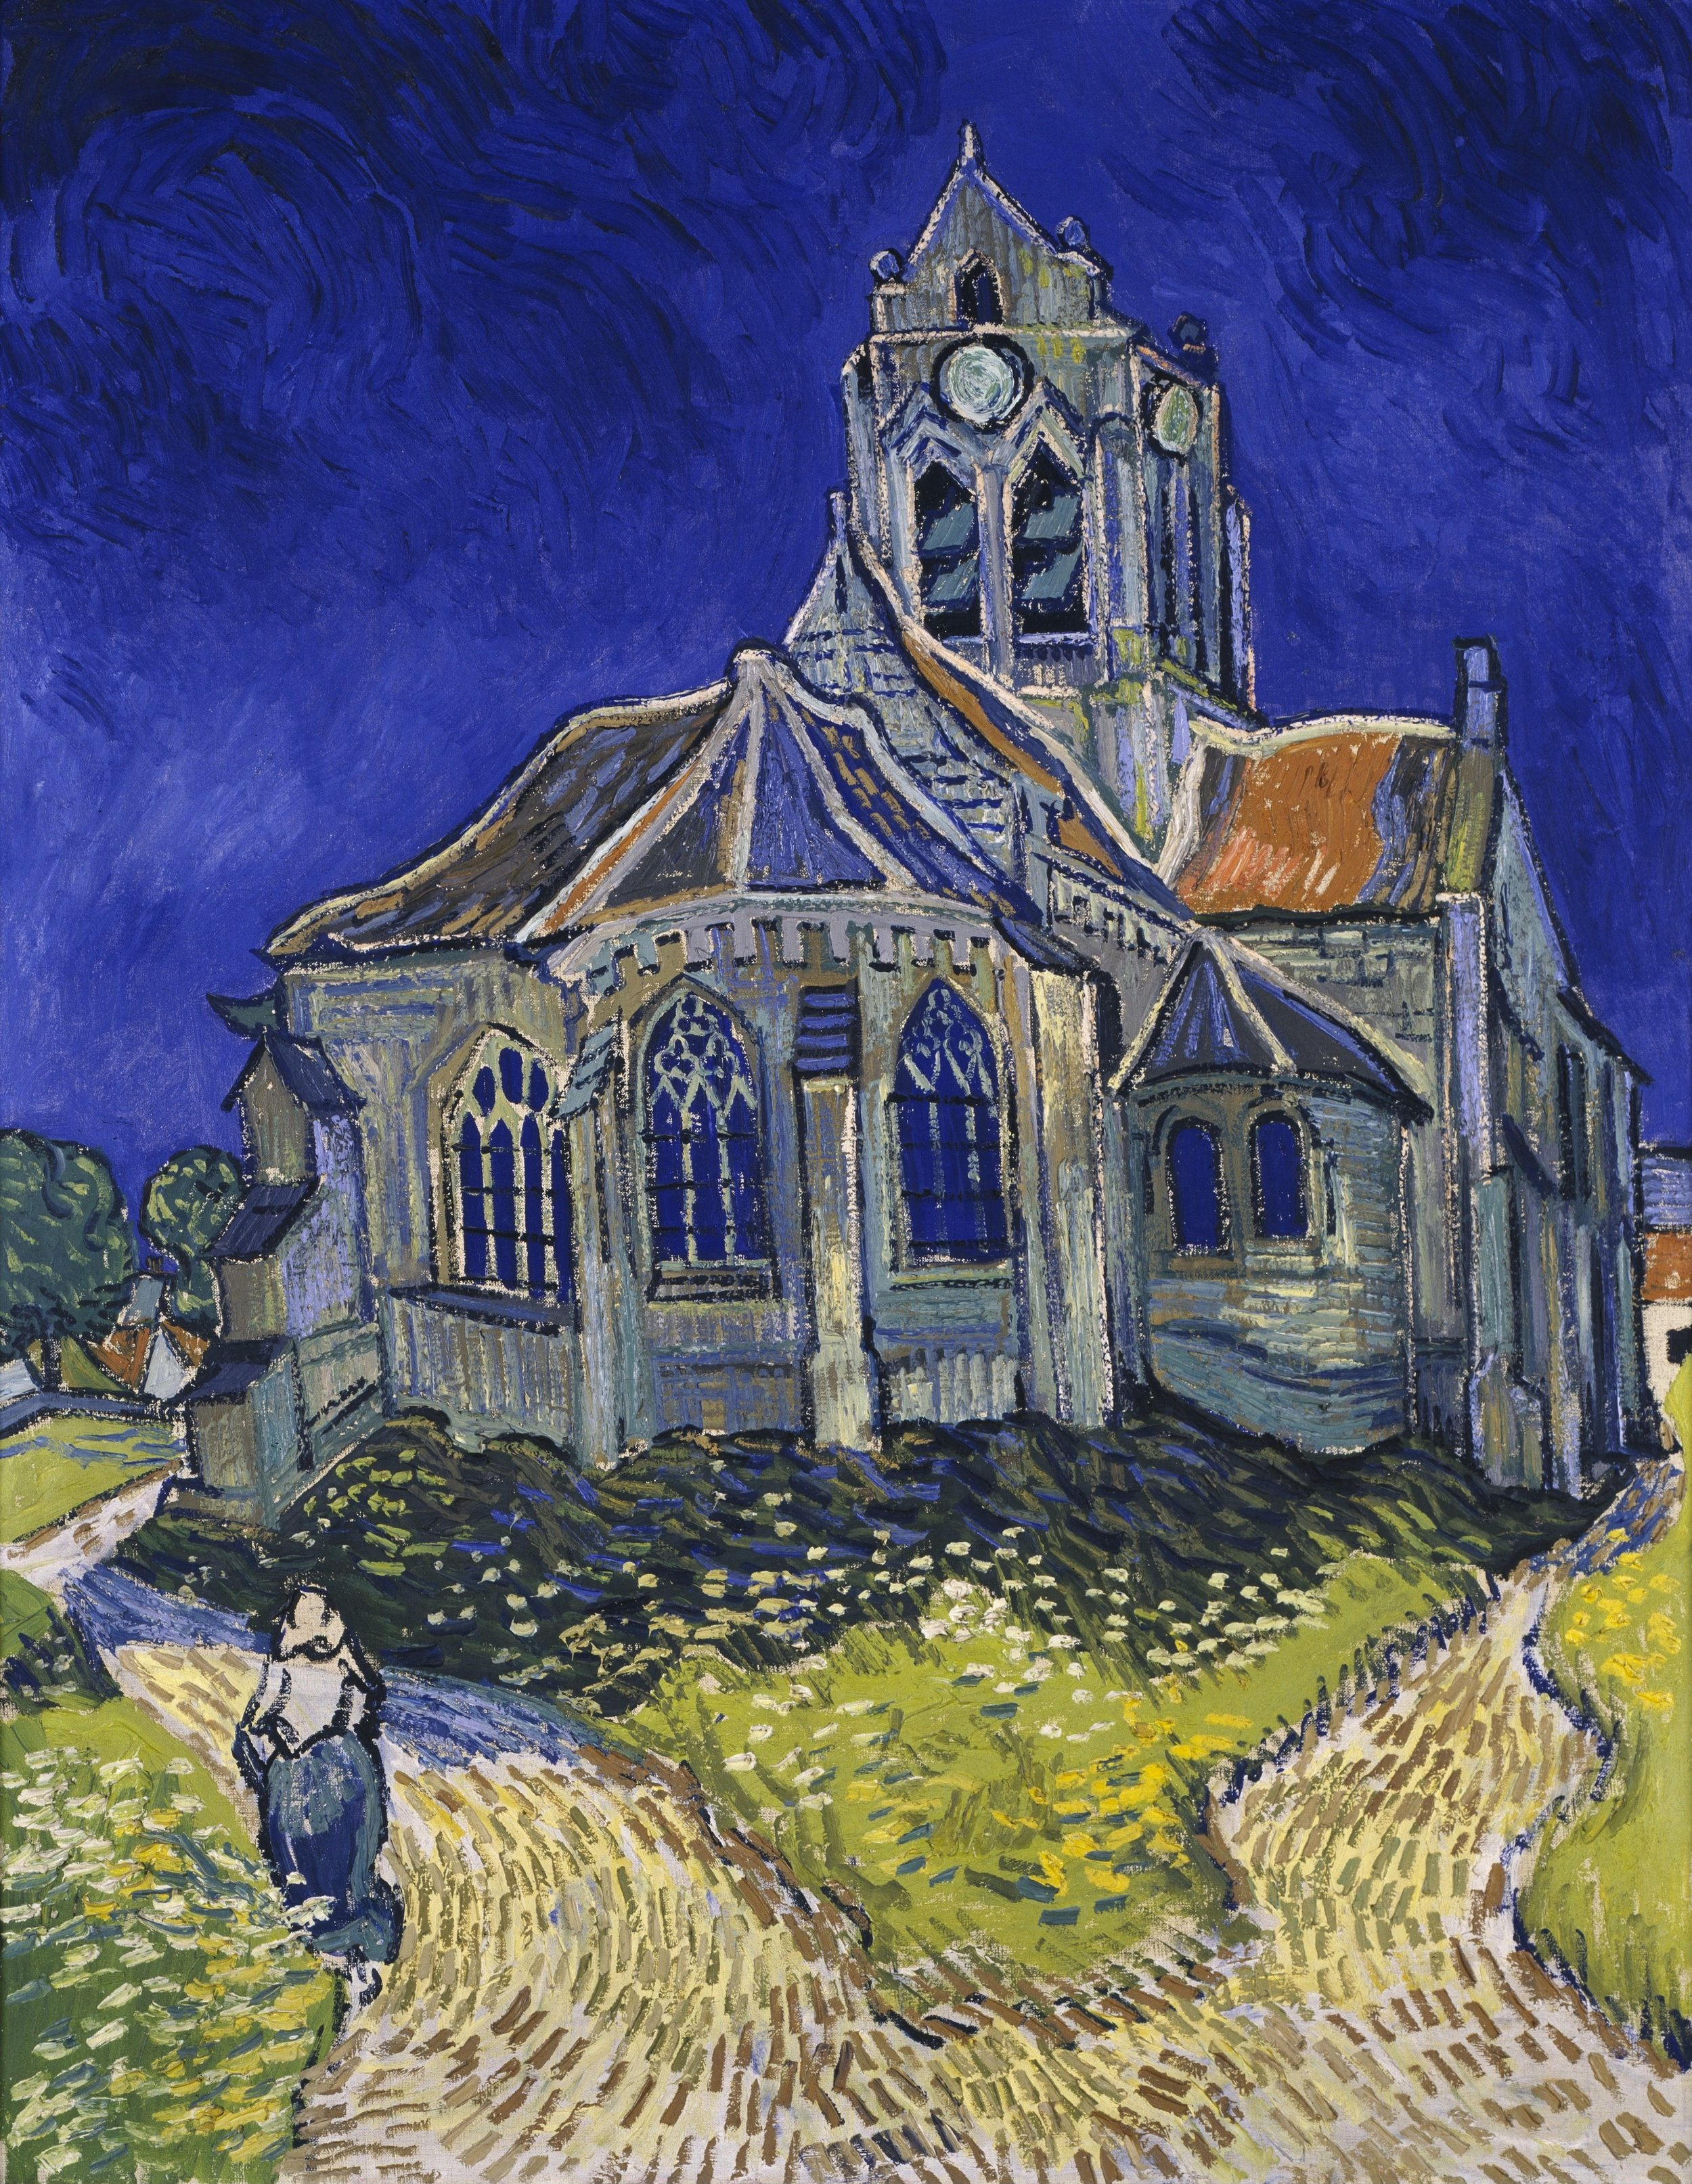 Vincent_van_Gogh_-_The_Church_in_Auvers-sur-Oise,_View_from_the_Chevet_-_Google_Art_Project.jpg